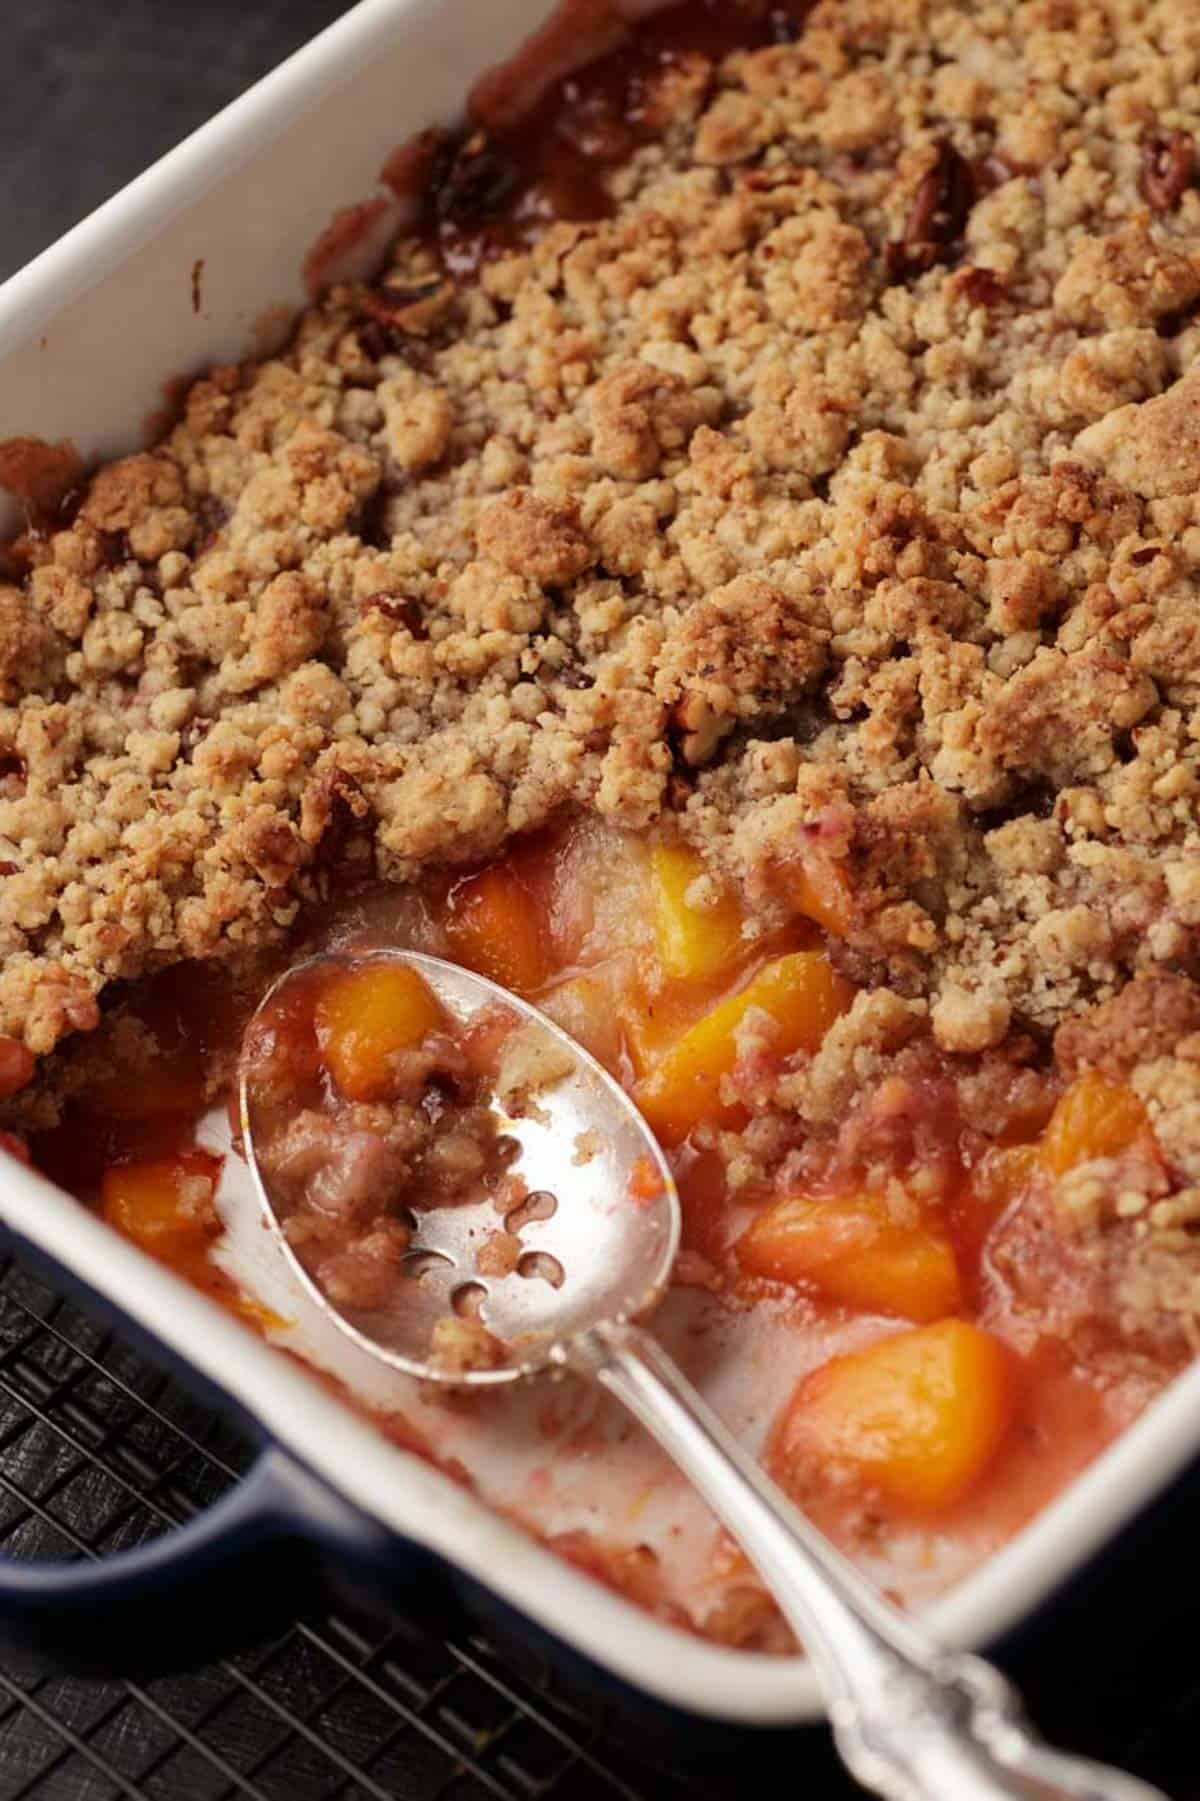 A baking dish of peach crumble with a serving removed.